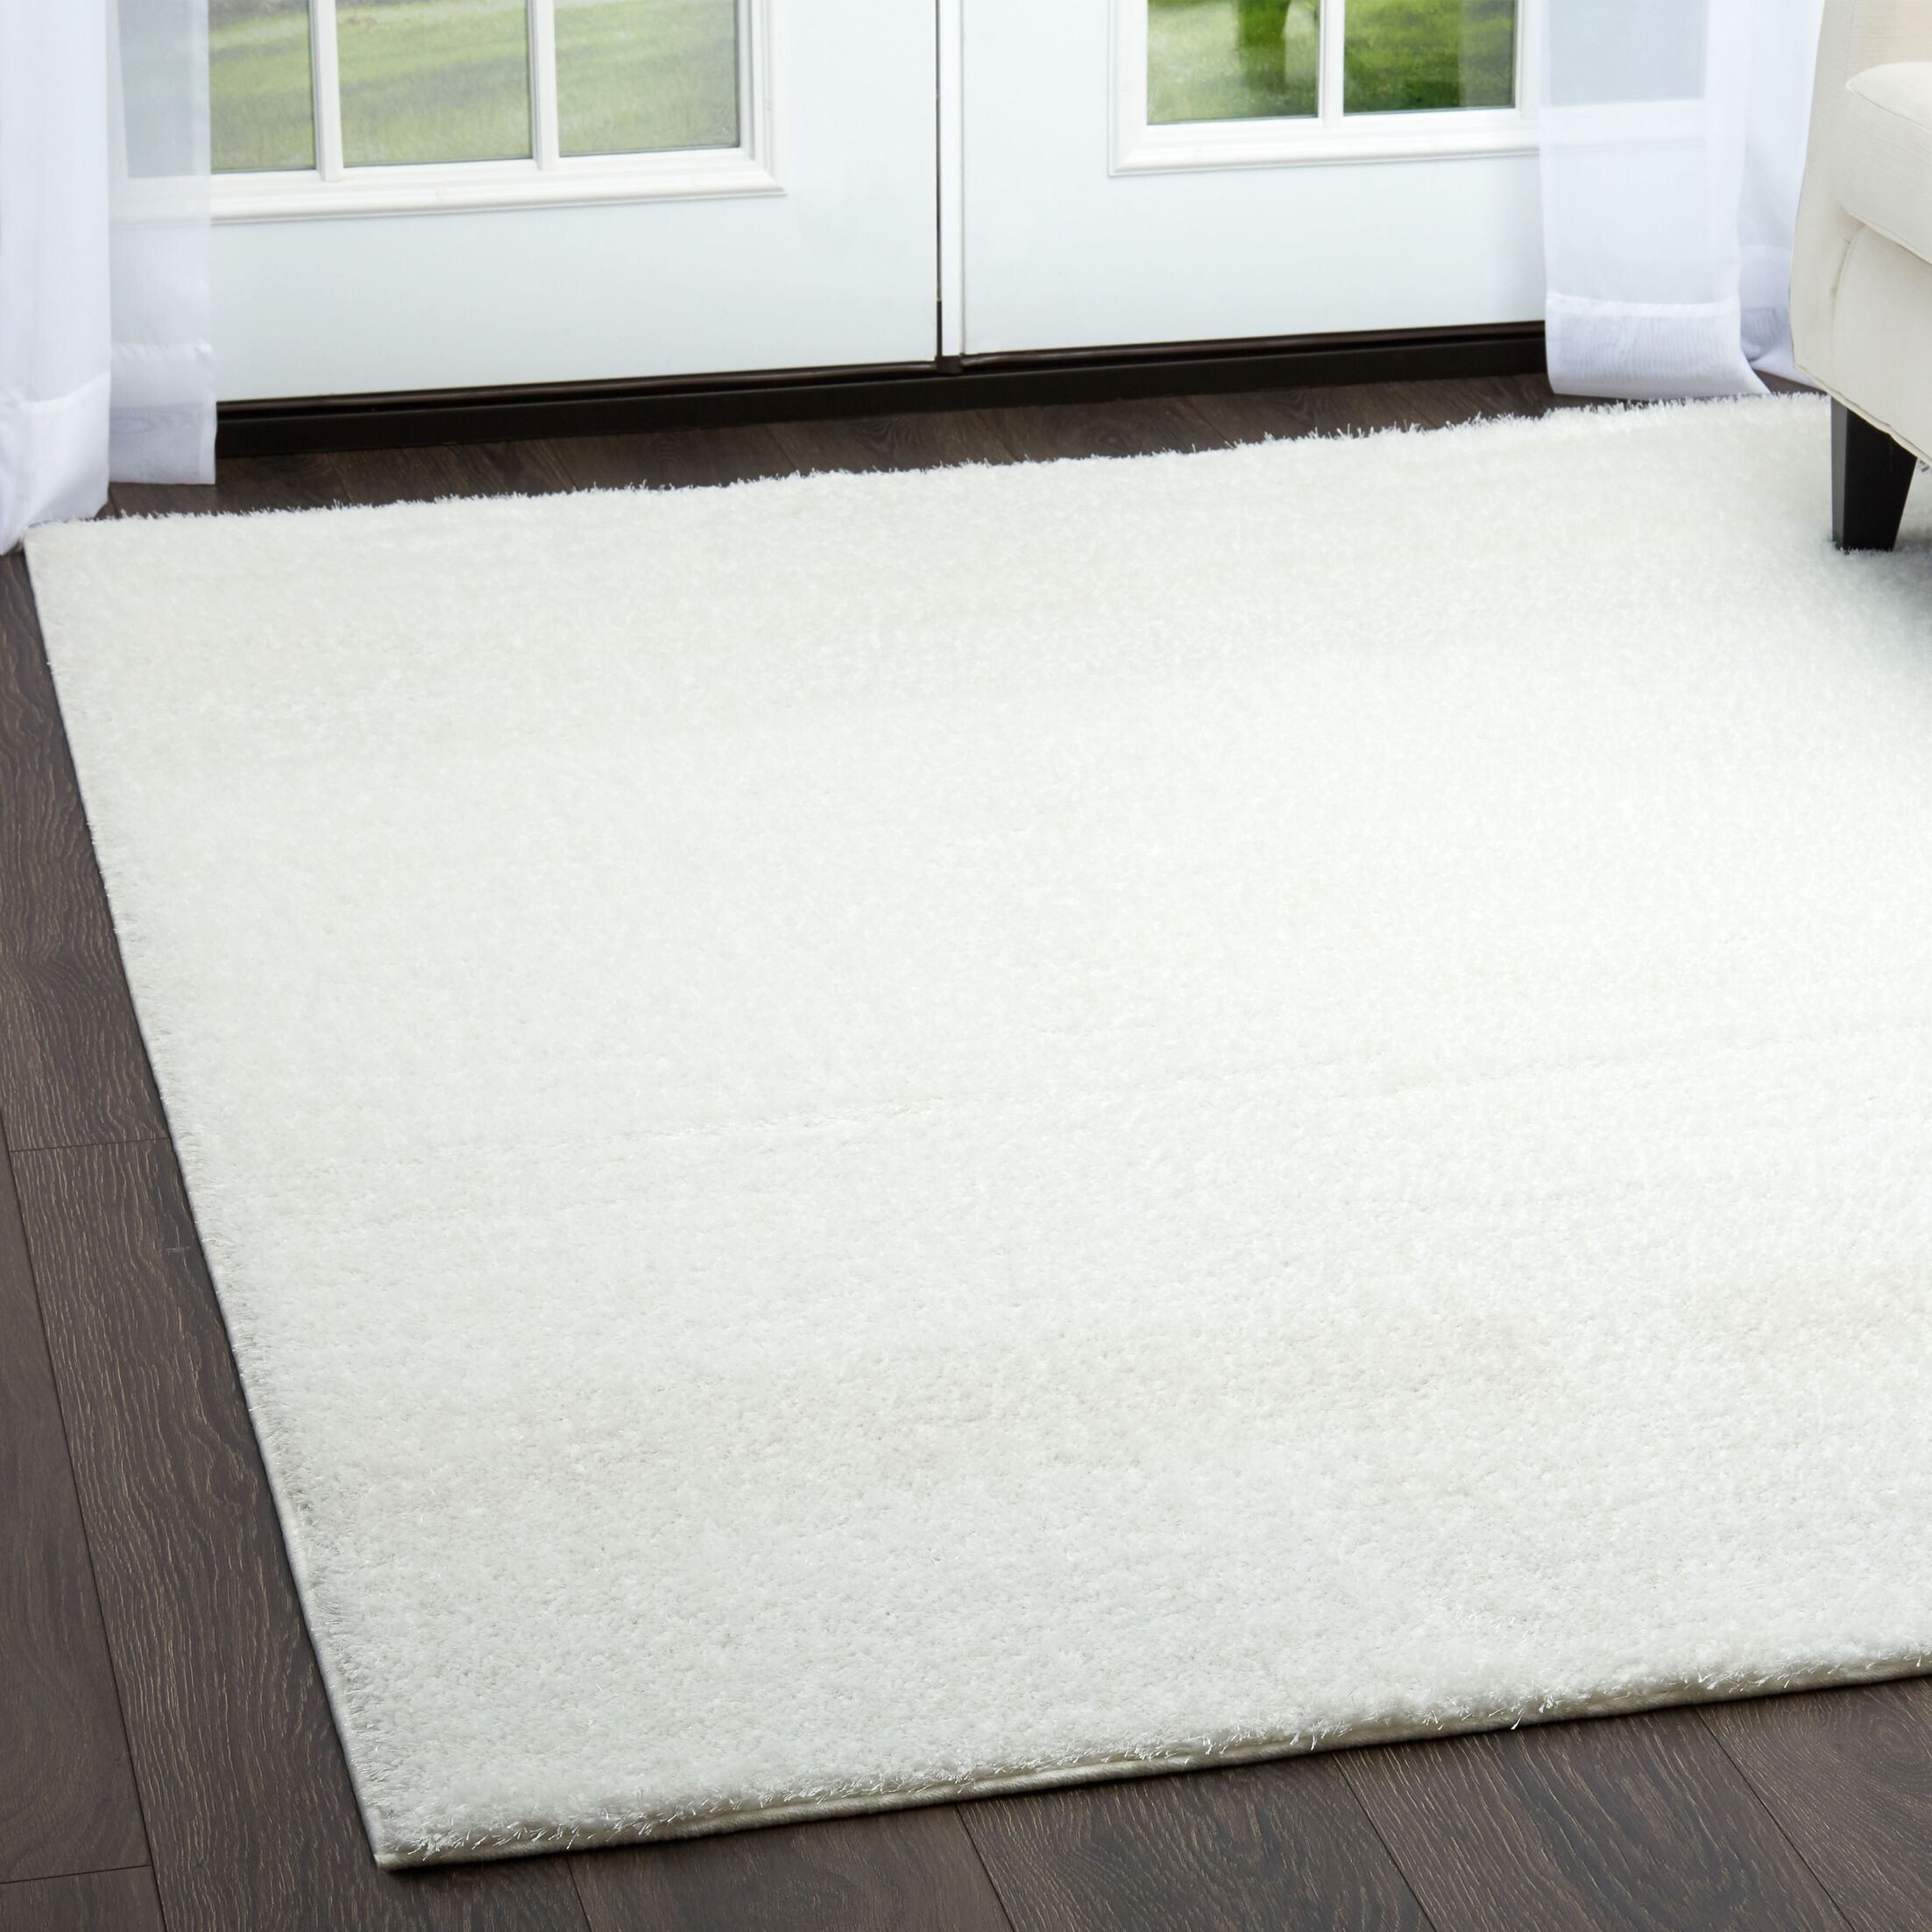 Glenpool Shimmery Shag White Area Rug Rug Size: Rectangle 5'3